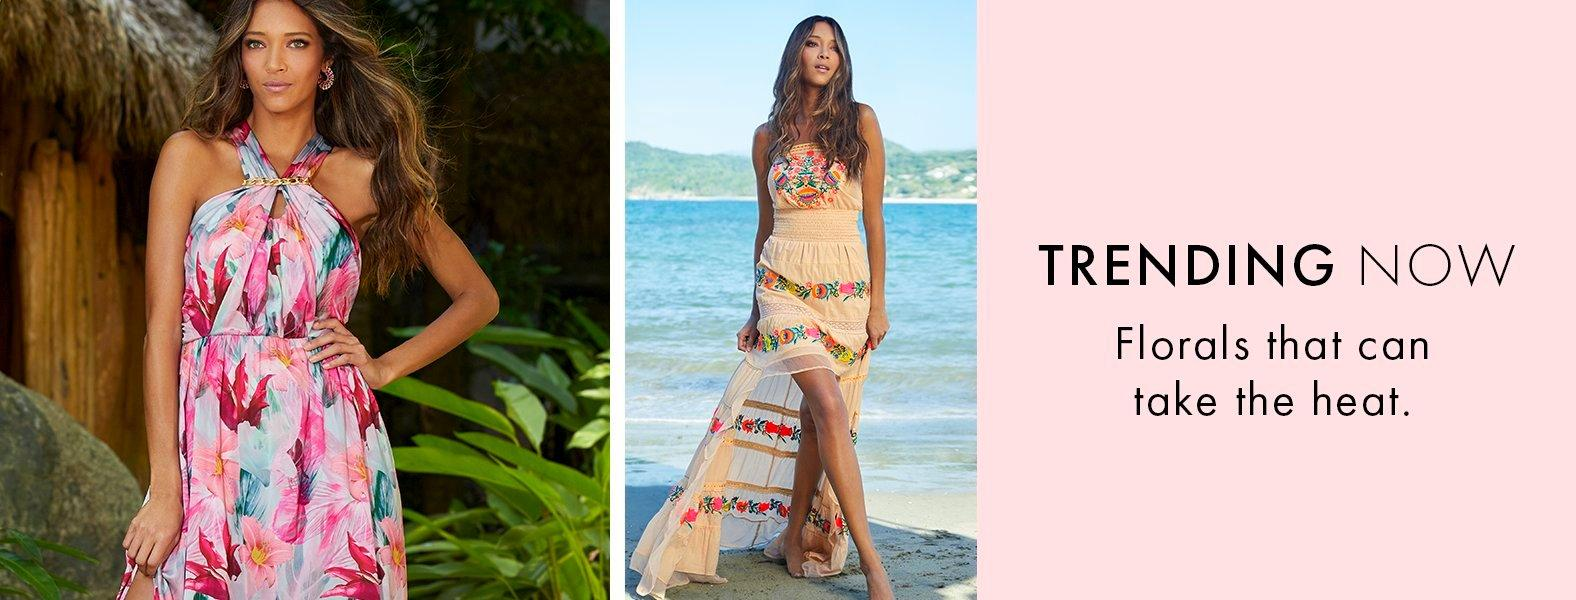 left model wearing a pink and blue floral print halter neck maxi dress. right model wearing a strapless tan high-low maxi dress with bright floral embroidery.